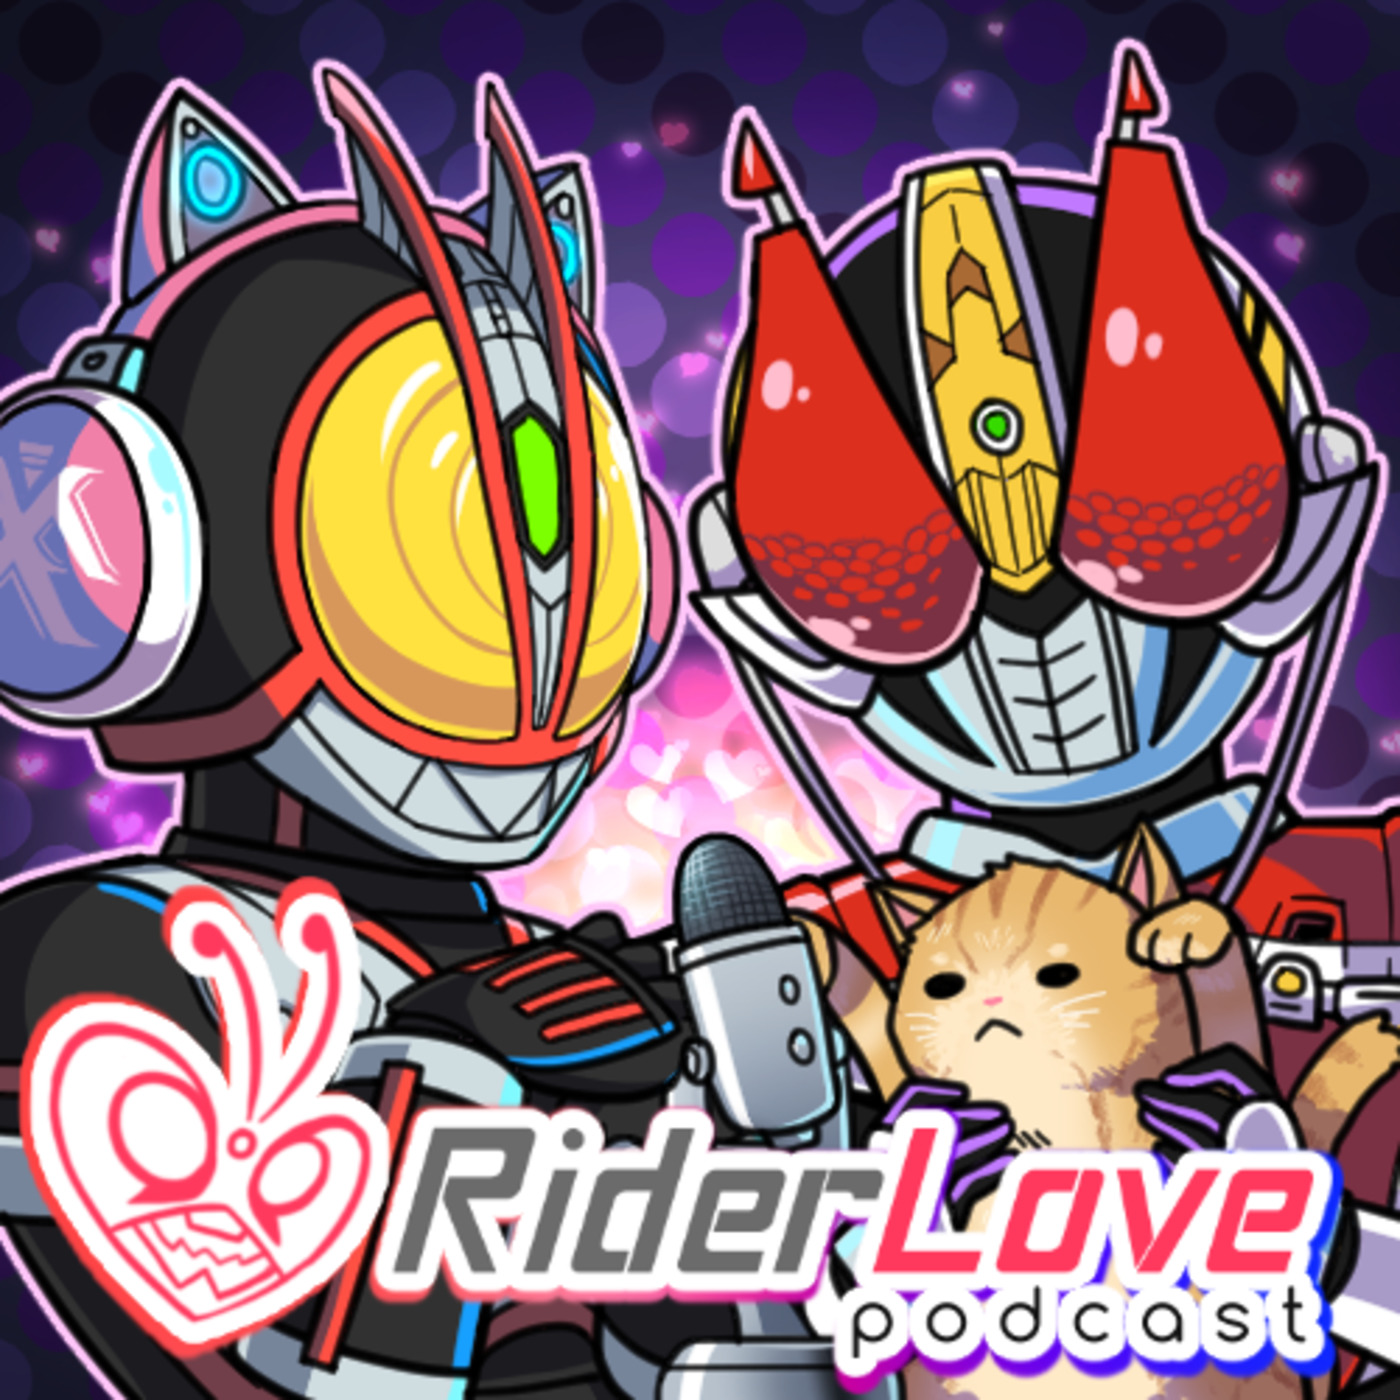 Rider Love - A Kamen Rider Podcast on Apple Podcasts